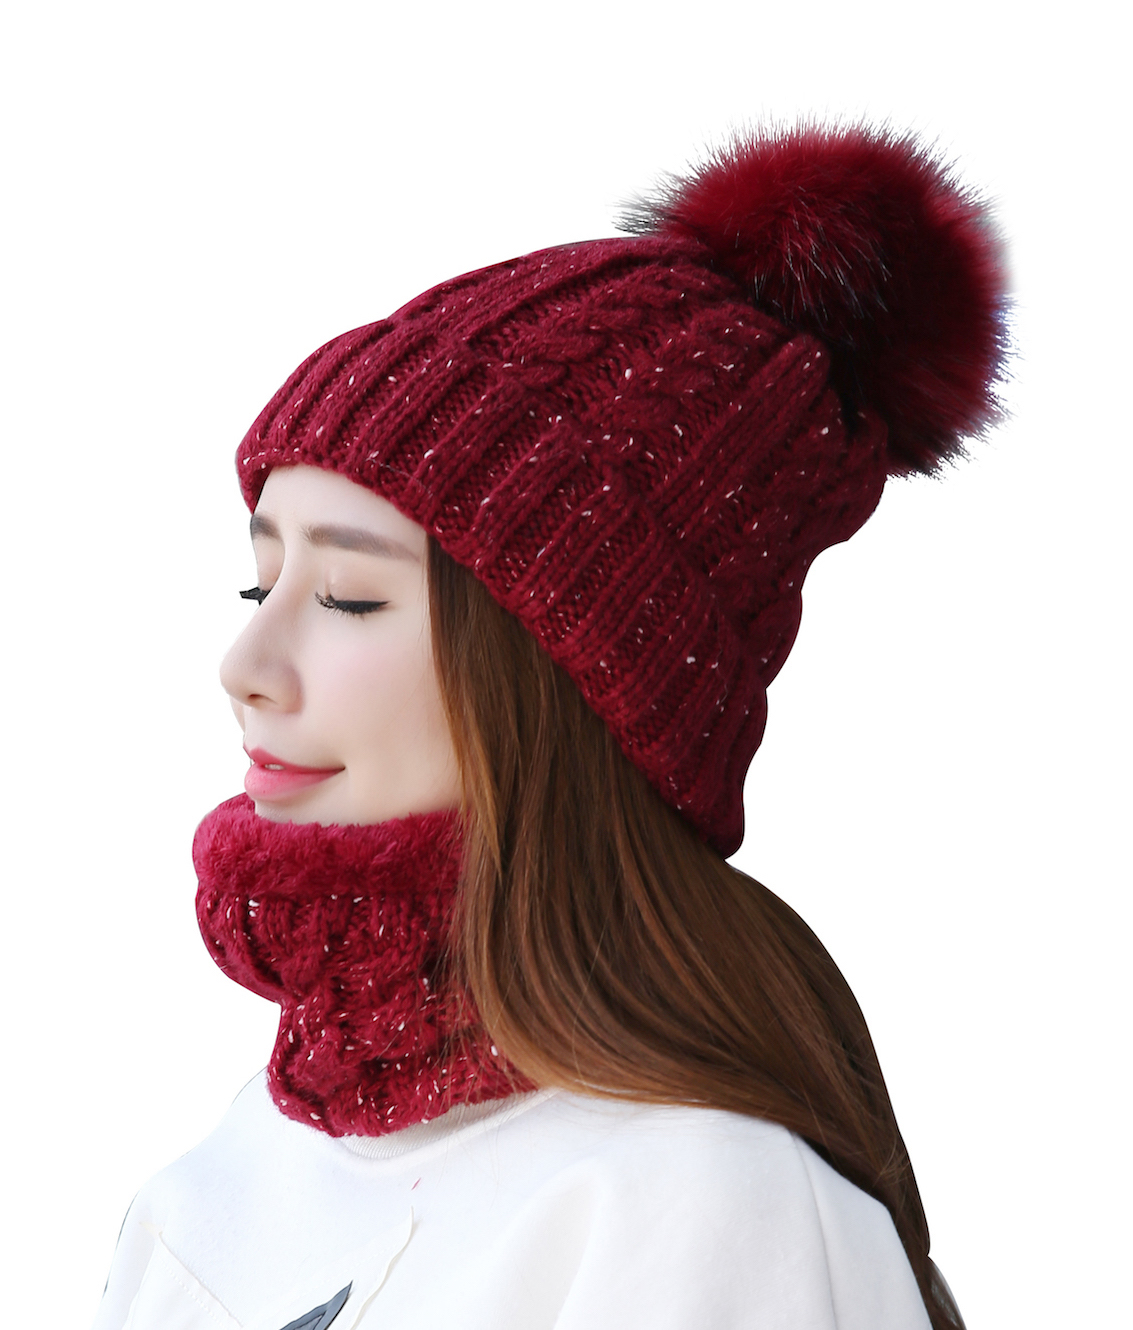 Connectyle Womens Winter Beanie Hat Soft Fleece Lined Circle Scarf Set Thick Warm Fuzzy Acrylic Knit Hat Neck Scarves